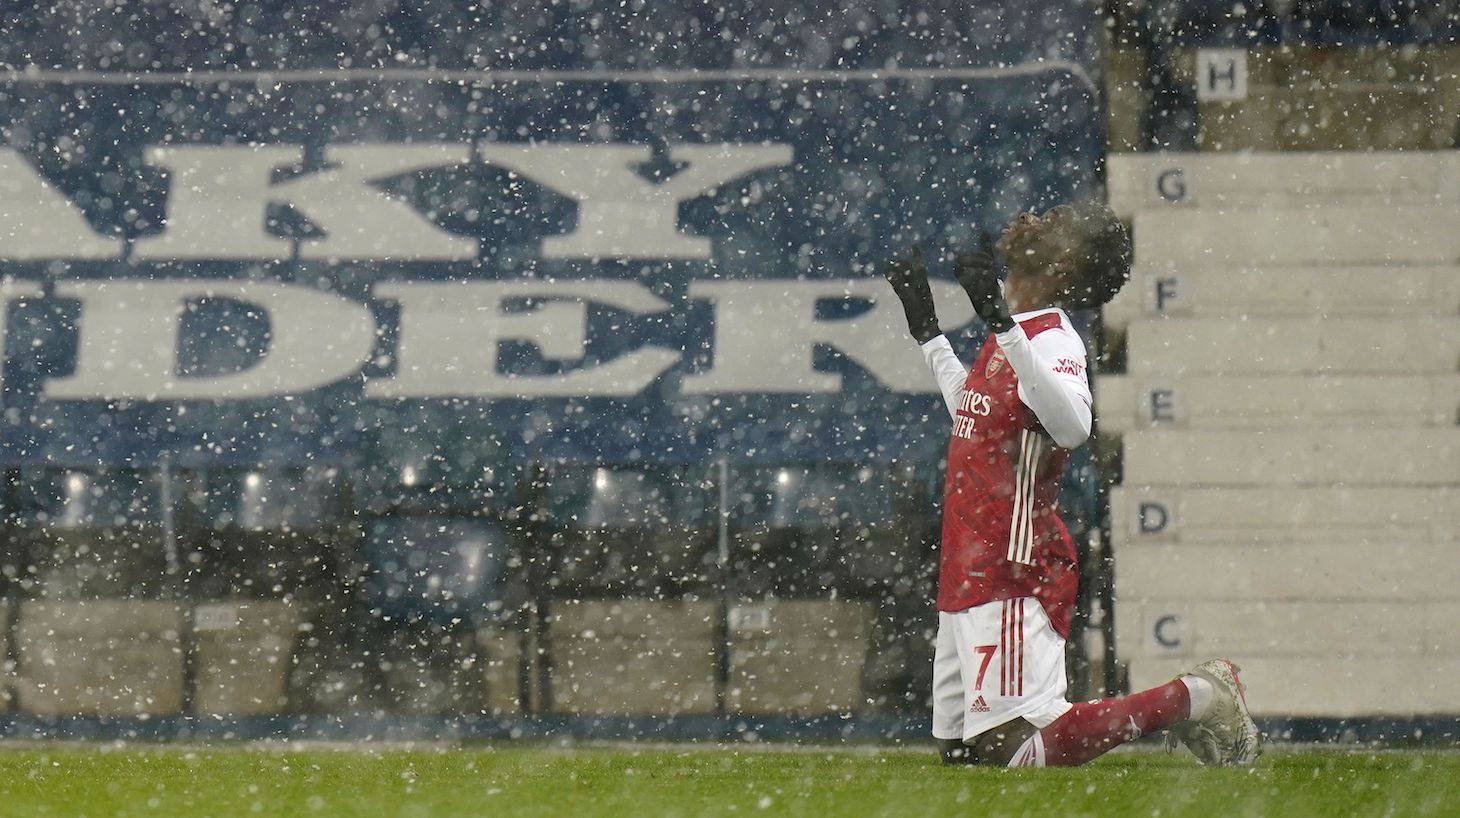 Arsenal's English striker Bukayo Saka celebrates scoring their second goal during the English Premier League football match between West Bromwich Albion and Arsenal at The Hawthorns stadium in West Bromwich, central England, on January 2, 2021.